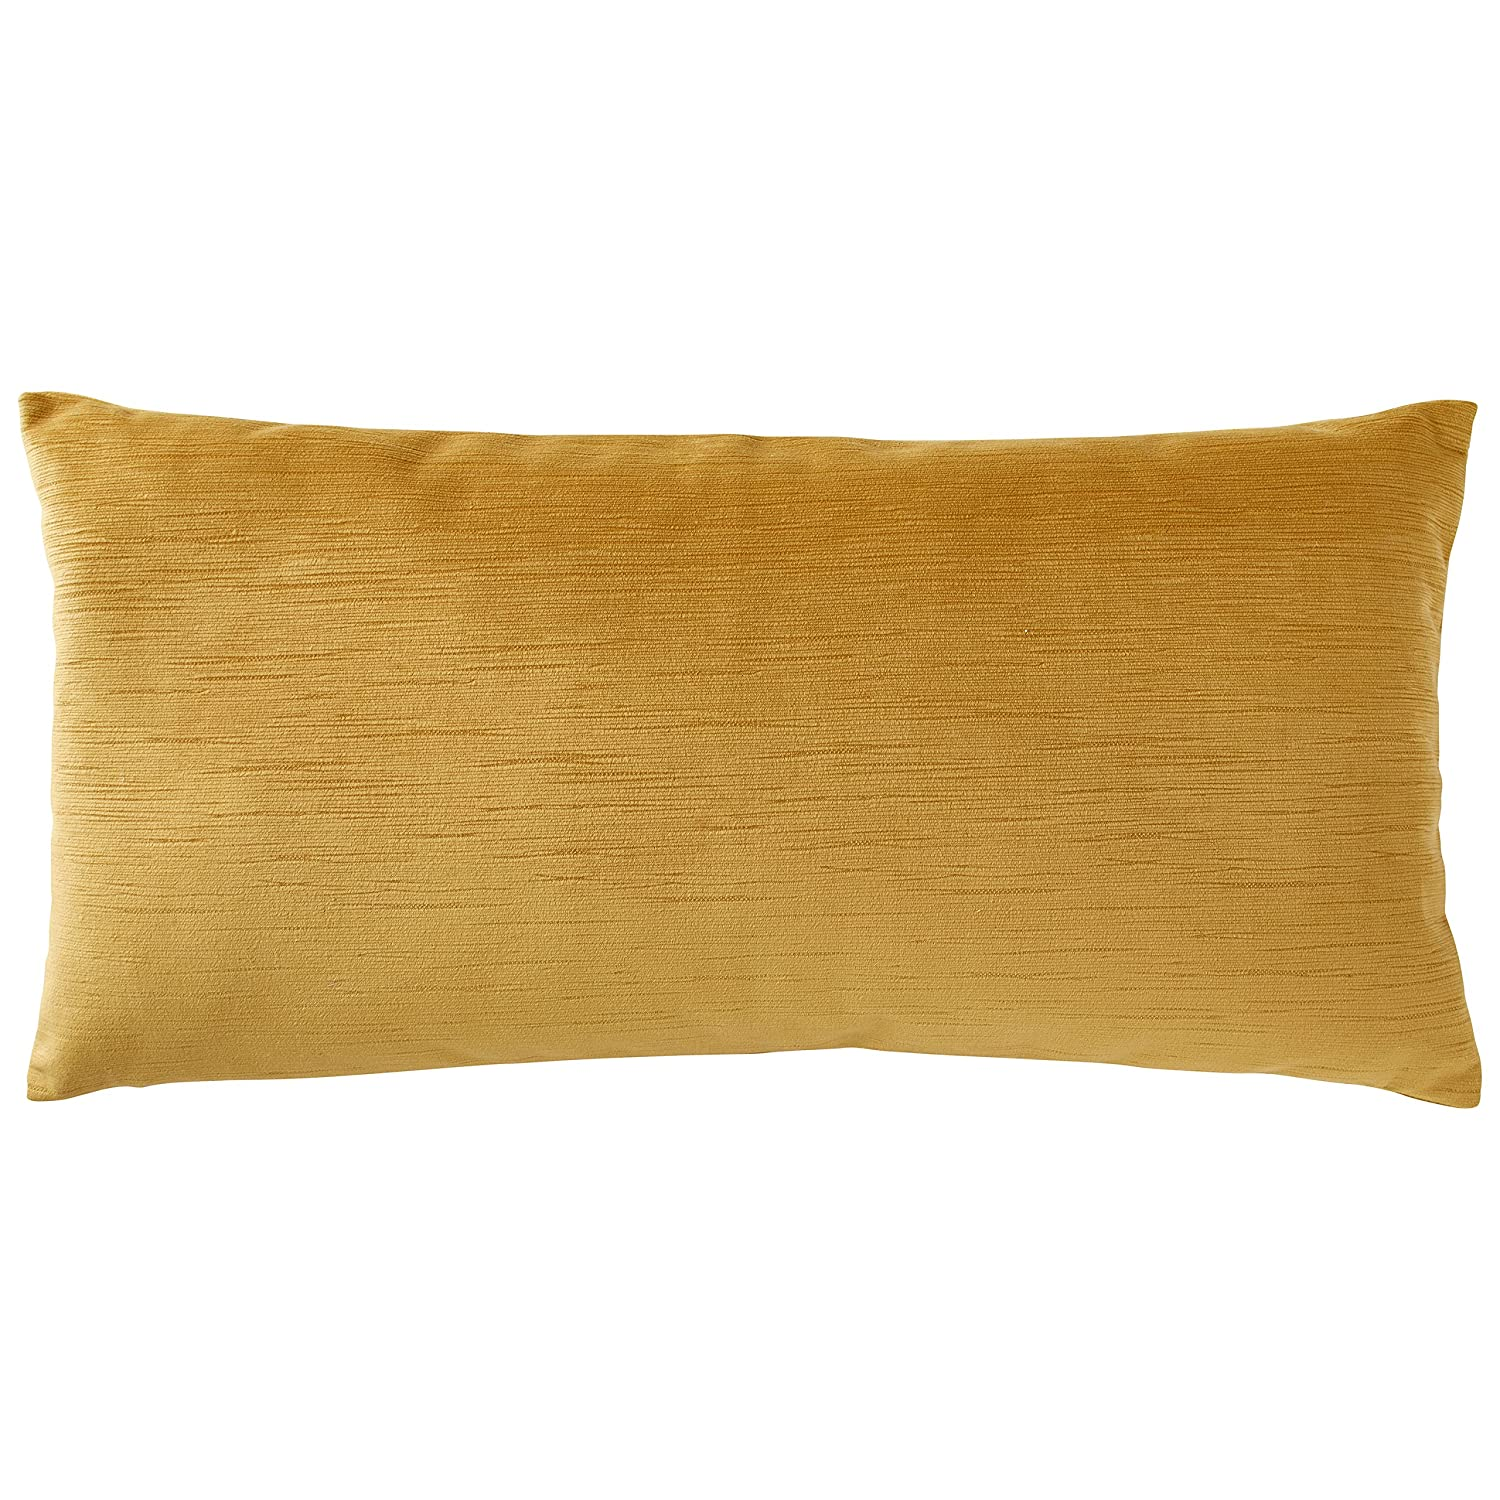 amazon xq generation striated com linen harbor dp pillow new velvet texture honeycomb rivet home x kitchen